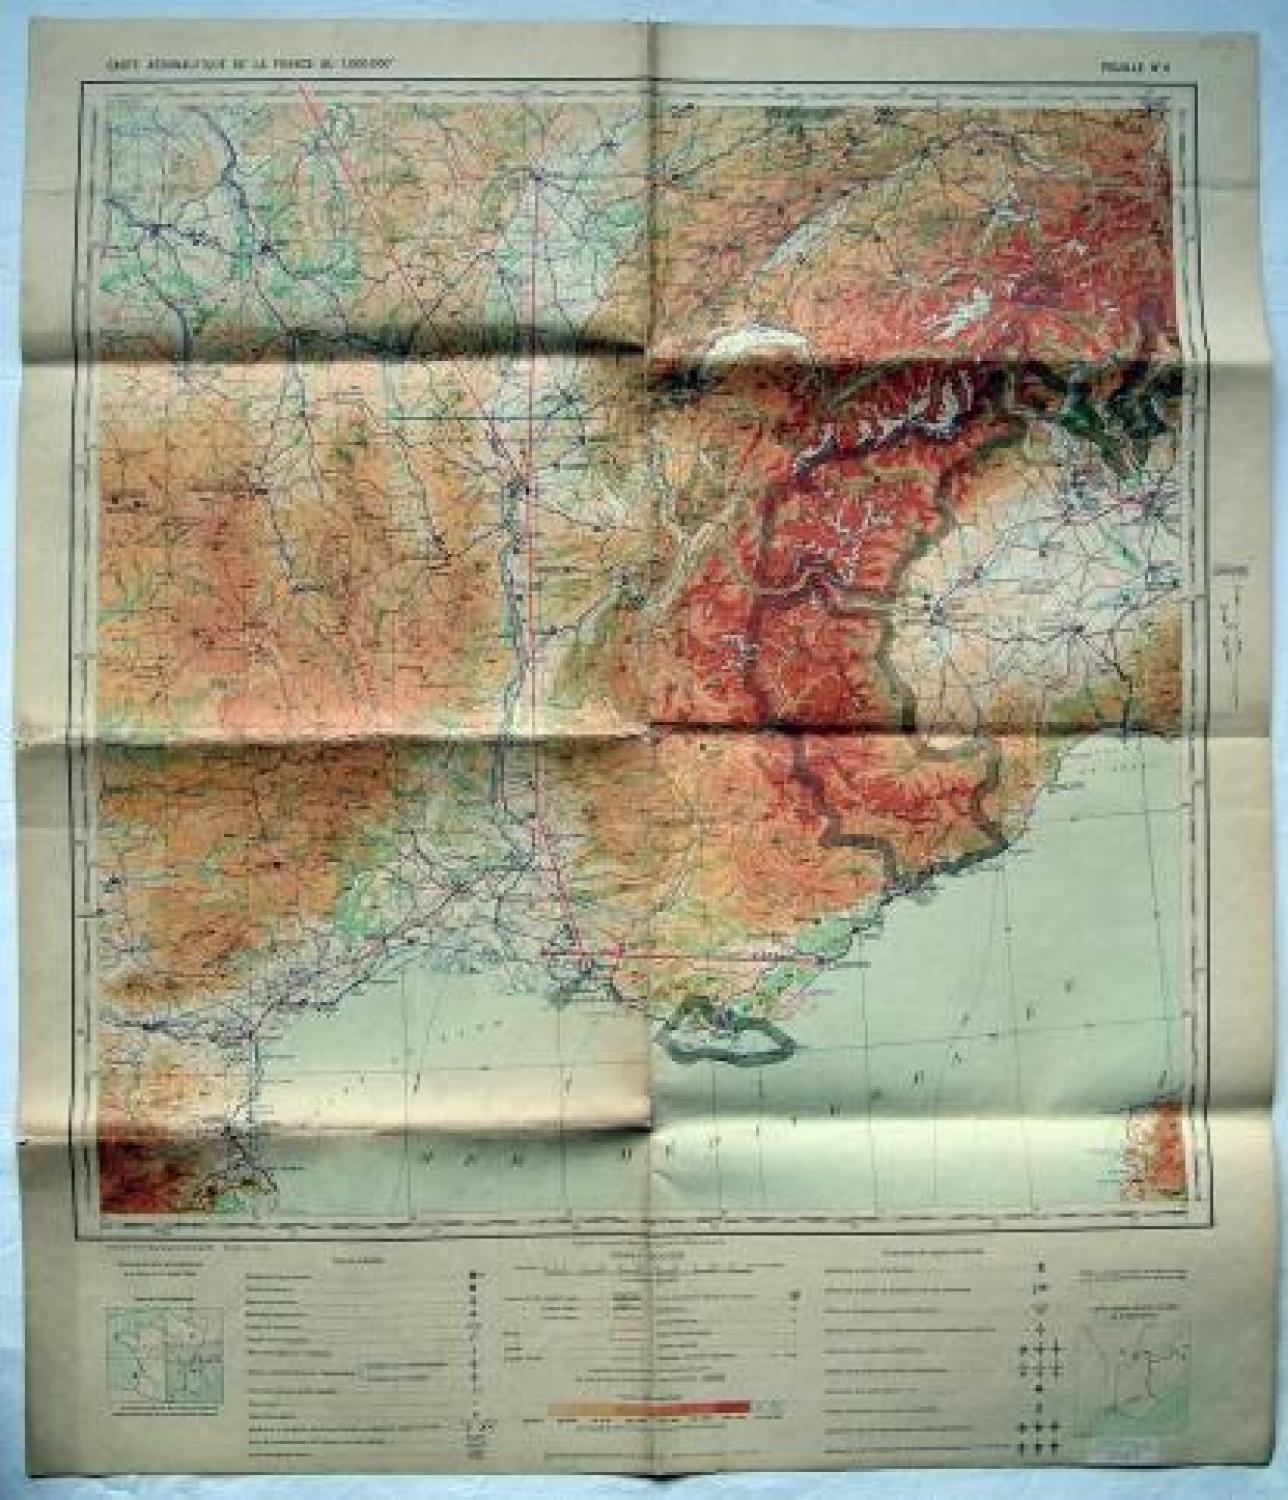 French Air Force Flight Map -  Lyon